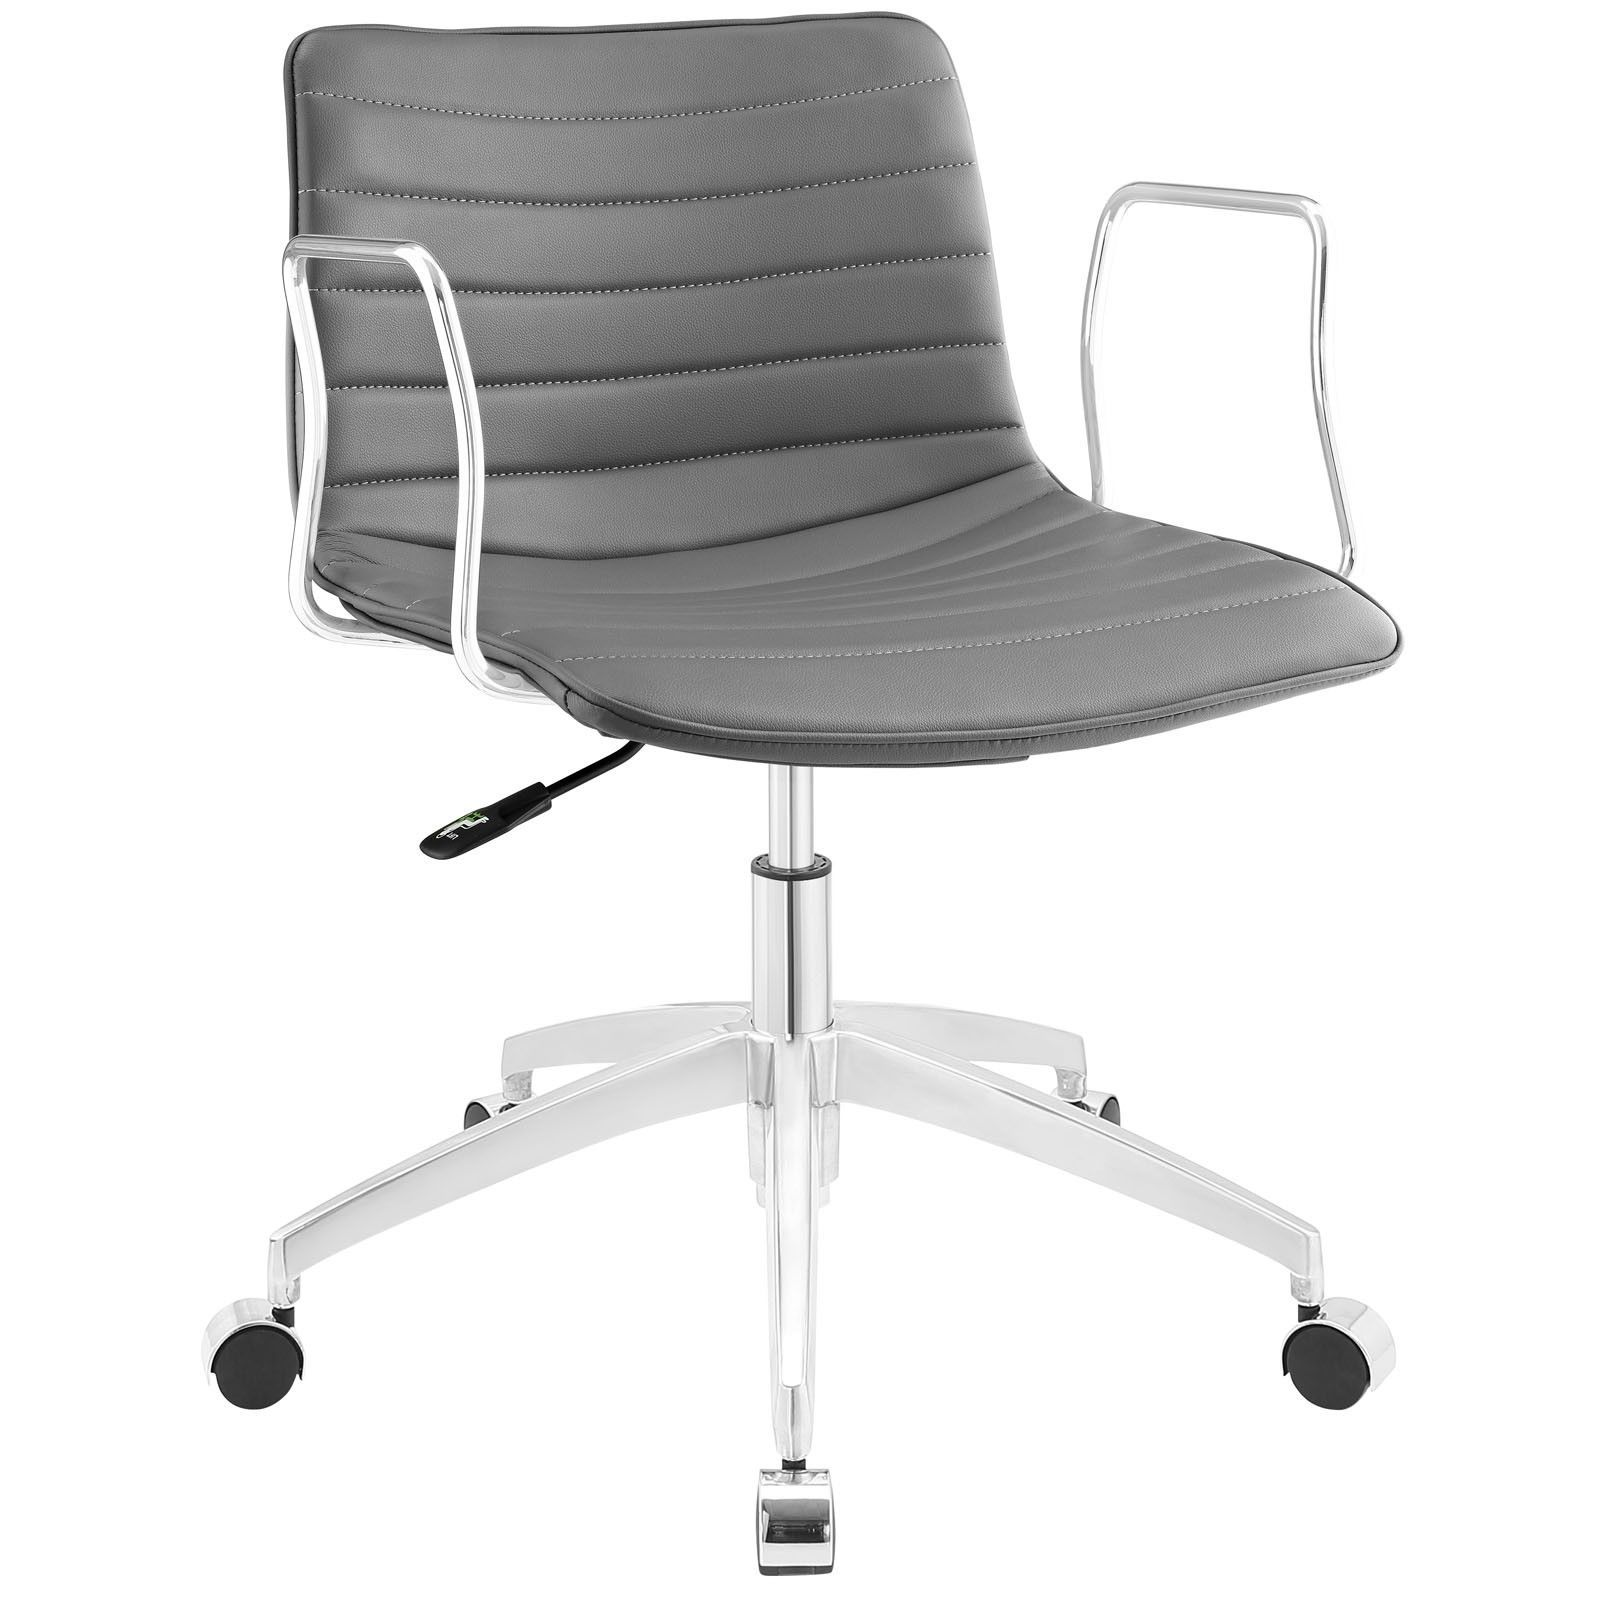 Trey Office Chair | Home | Pinterest | Products